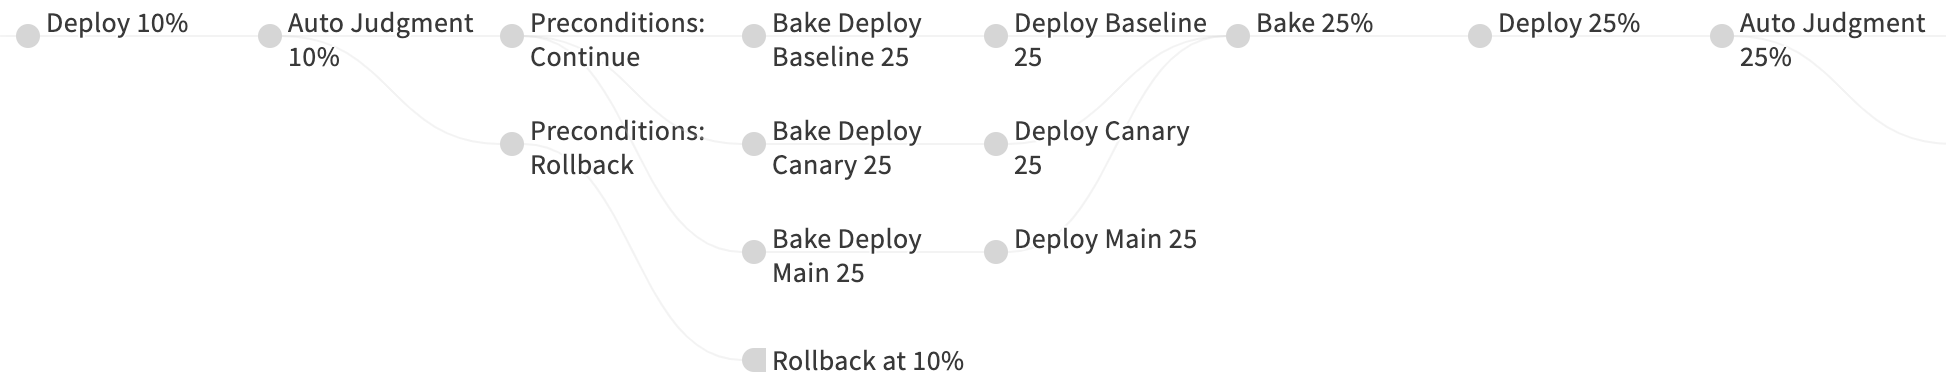 pipeline-canary-deploy